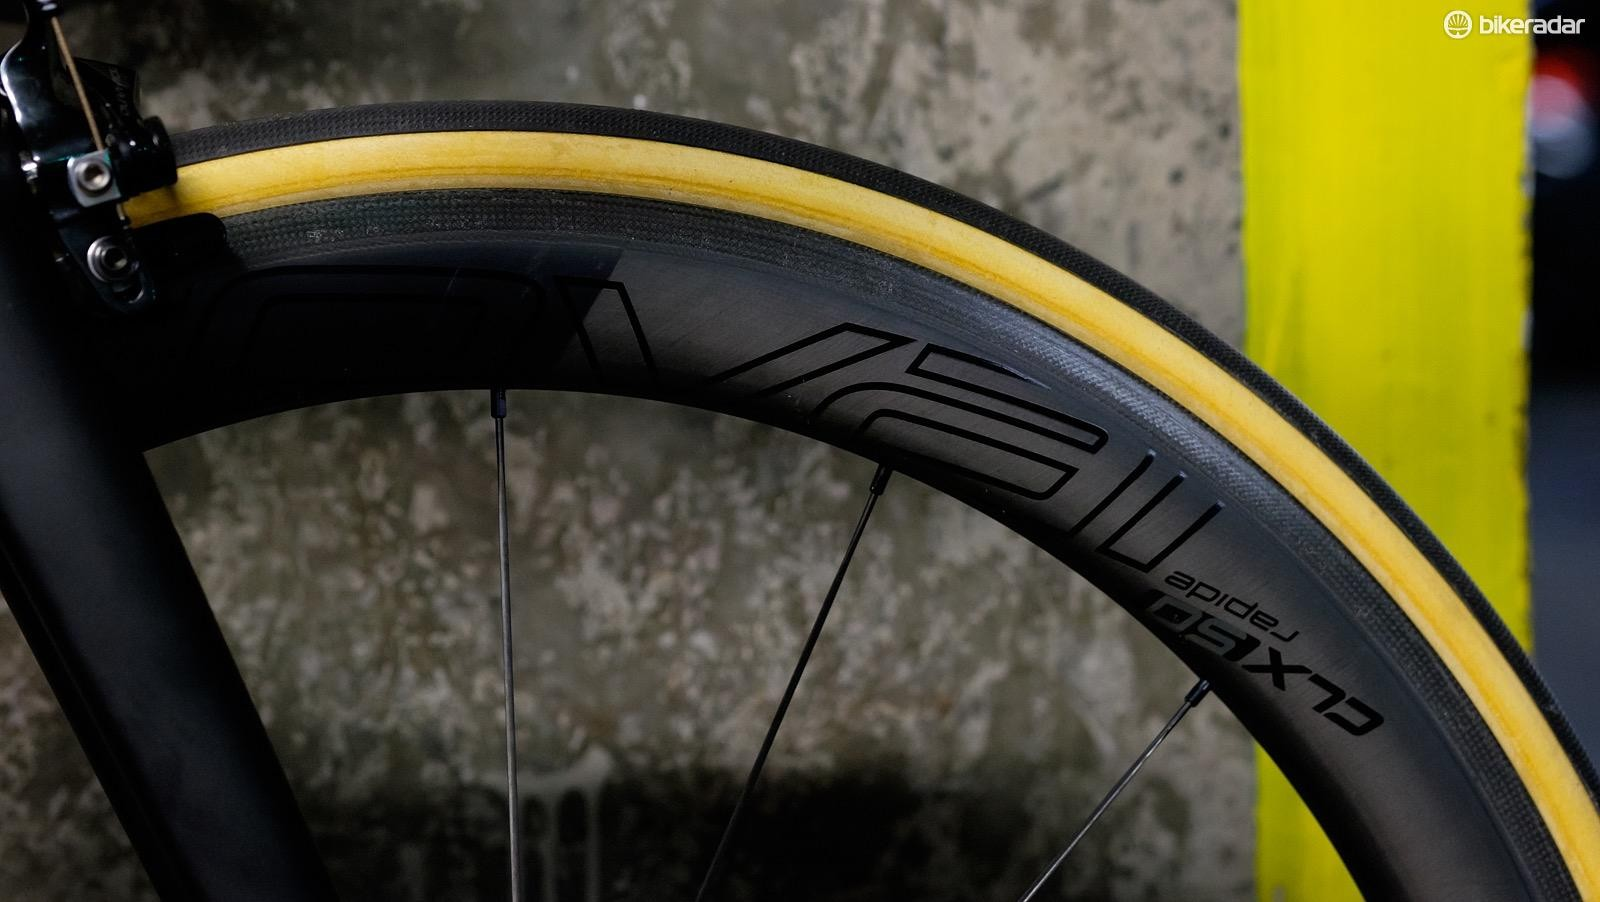 Roval CLX 50 wheels combine 50mm carbon rims with Roval AF1 hubs with CeramicSpeed bearings